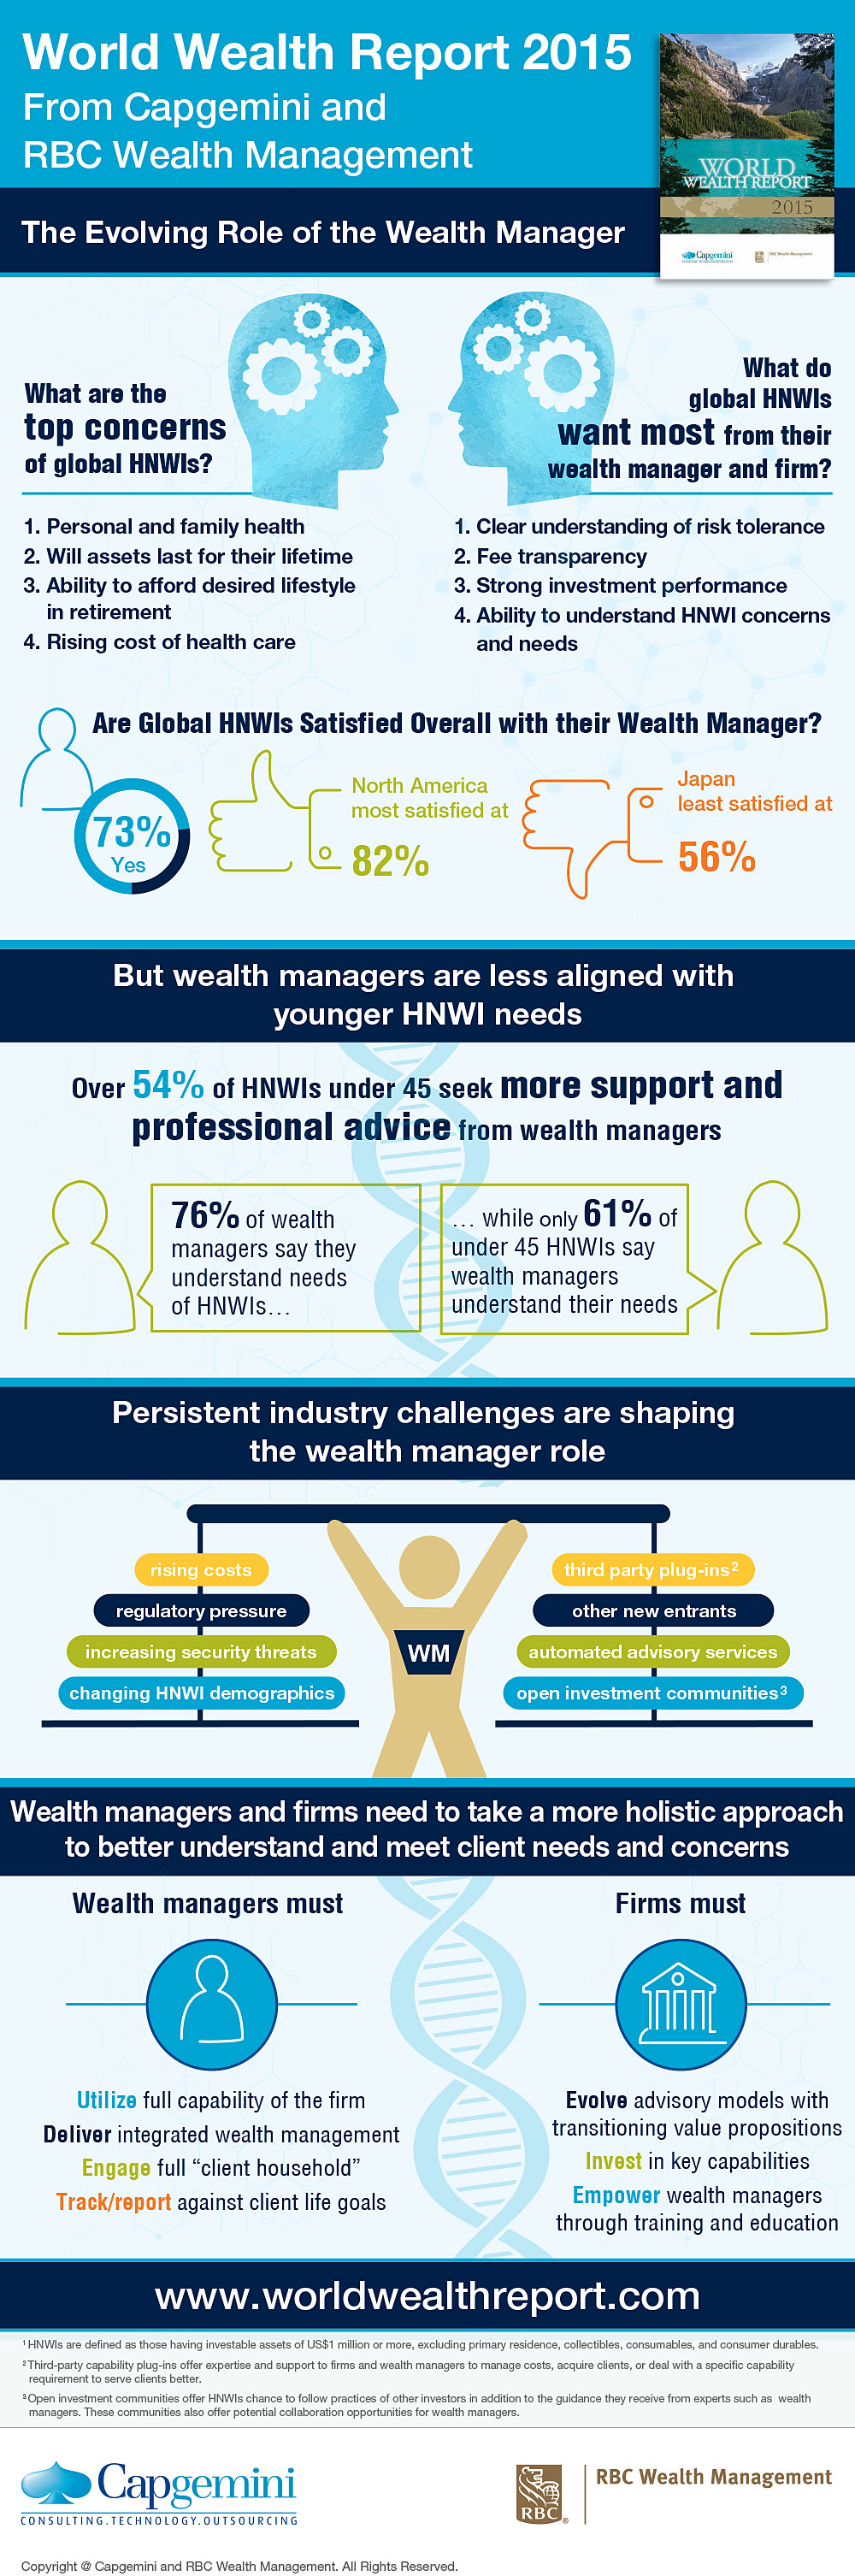 The Evolving Role of the Wealth Manager [Infographic]